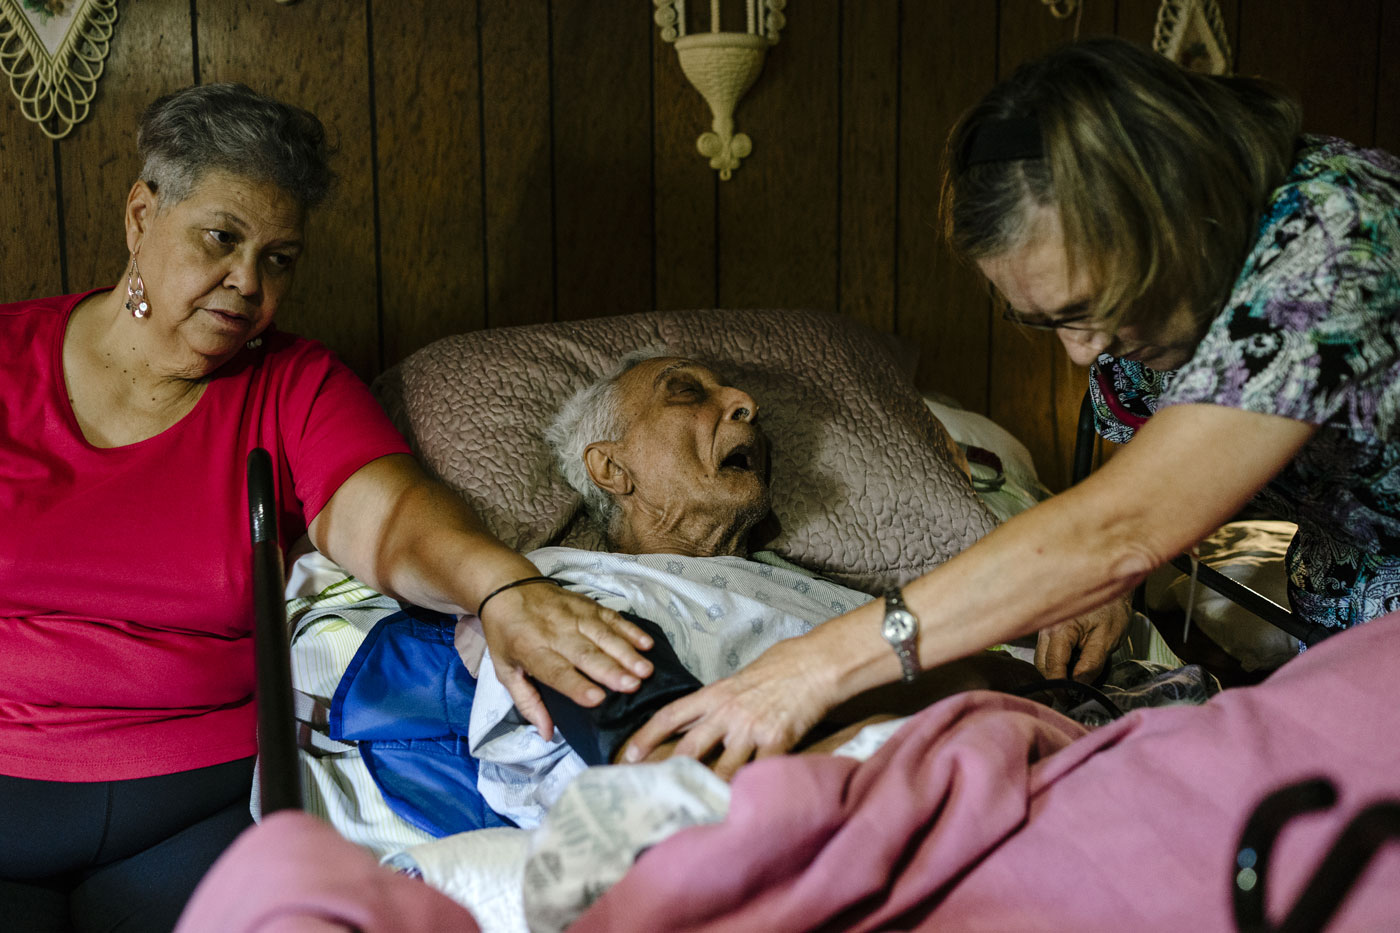 Judy Montgomery (L), 65, sits next to her father, Vallery Montgomery, 89, as nurse Laura Bull performs a checkup, Oct. 22, 2015, Westlake, La.